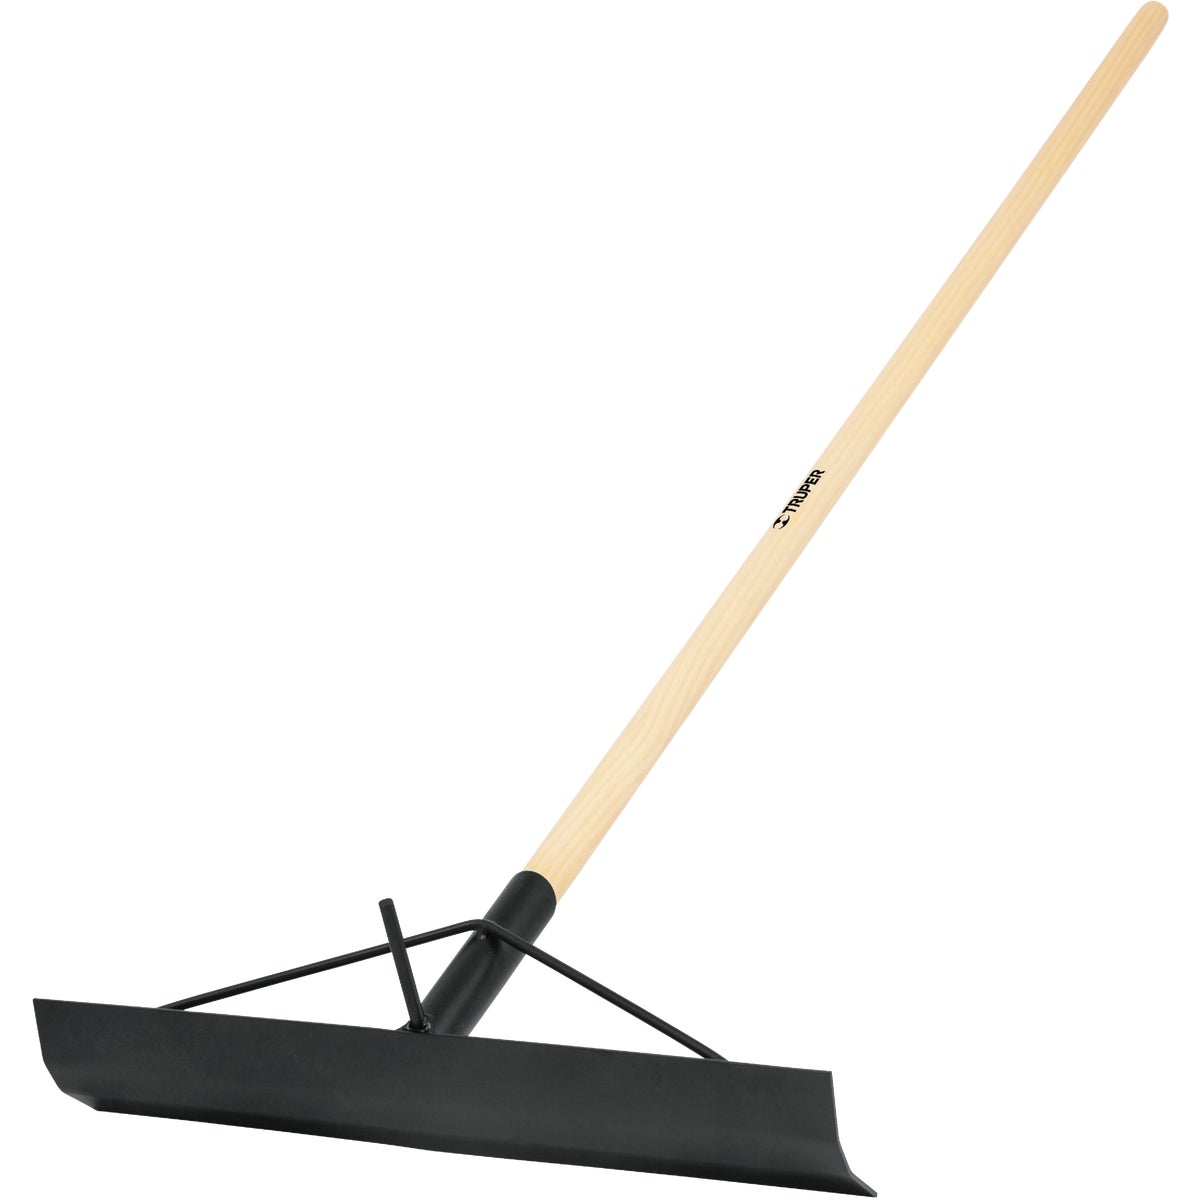 CONCRETE RAKE - 73300 by Seymour Mfg Co